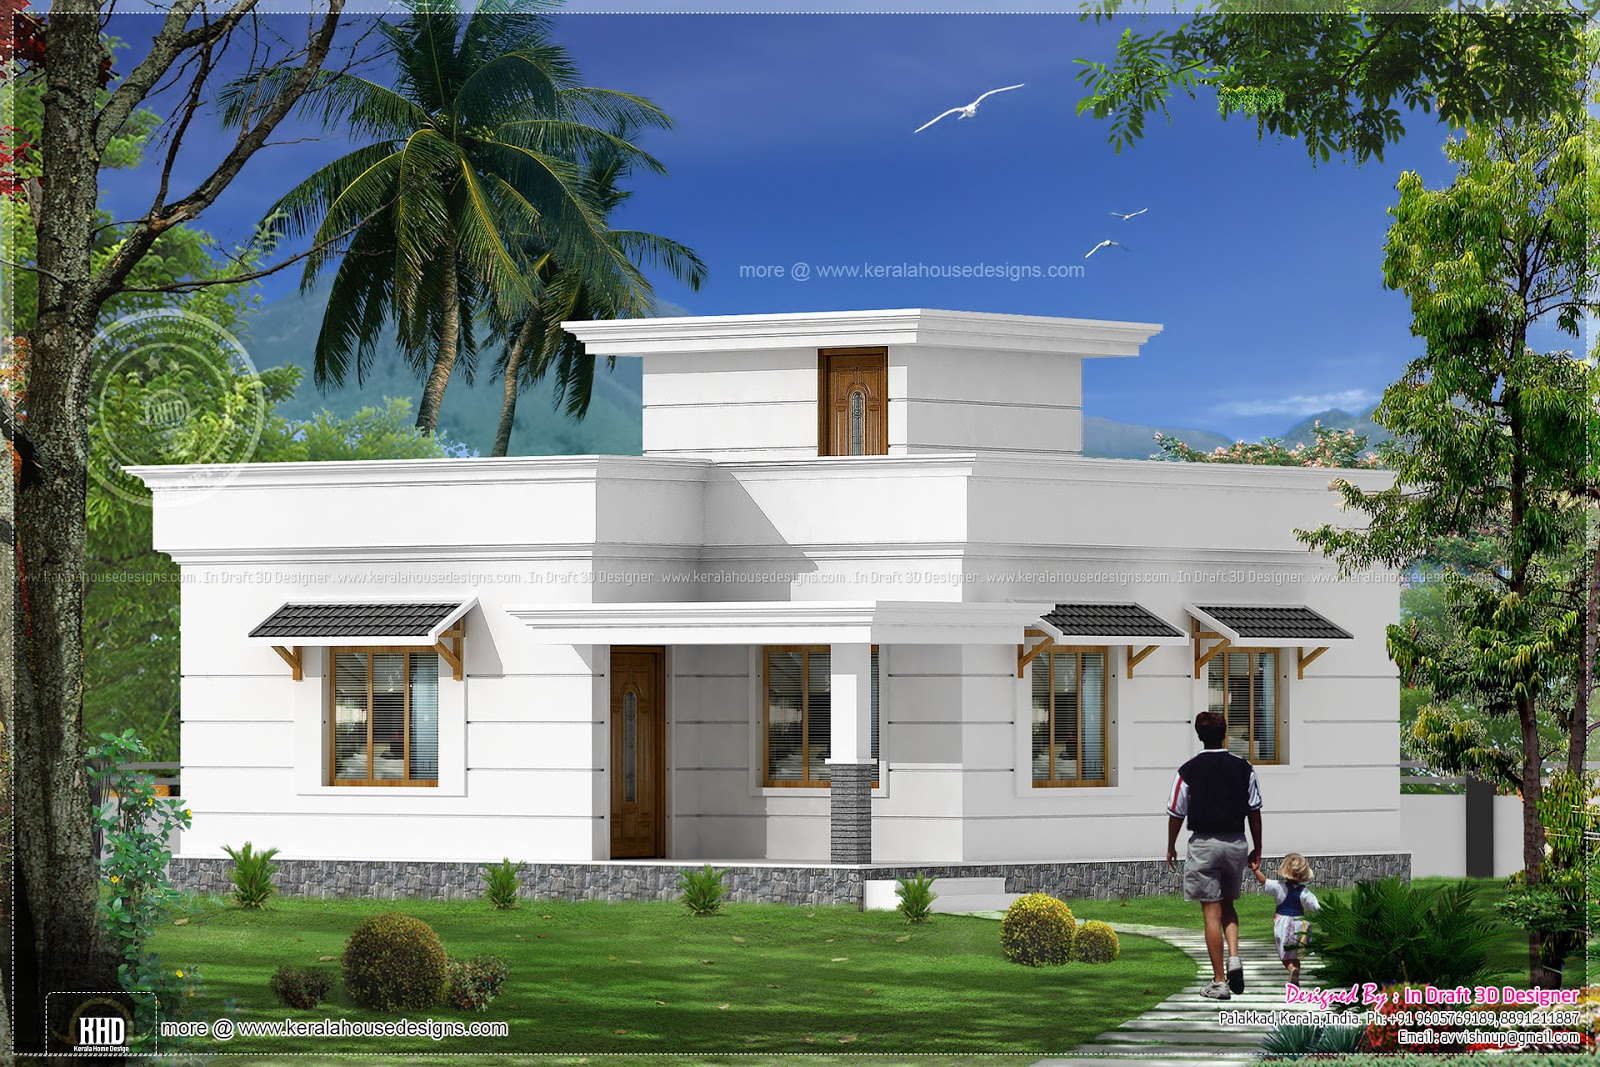 Bed room Kerala villa 1117 sq-feet - Kerala home design and floor ...